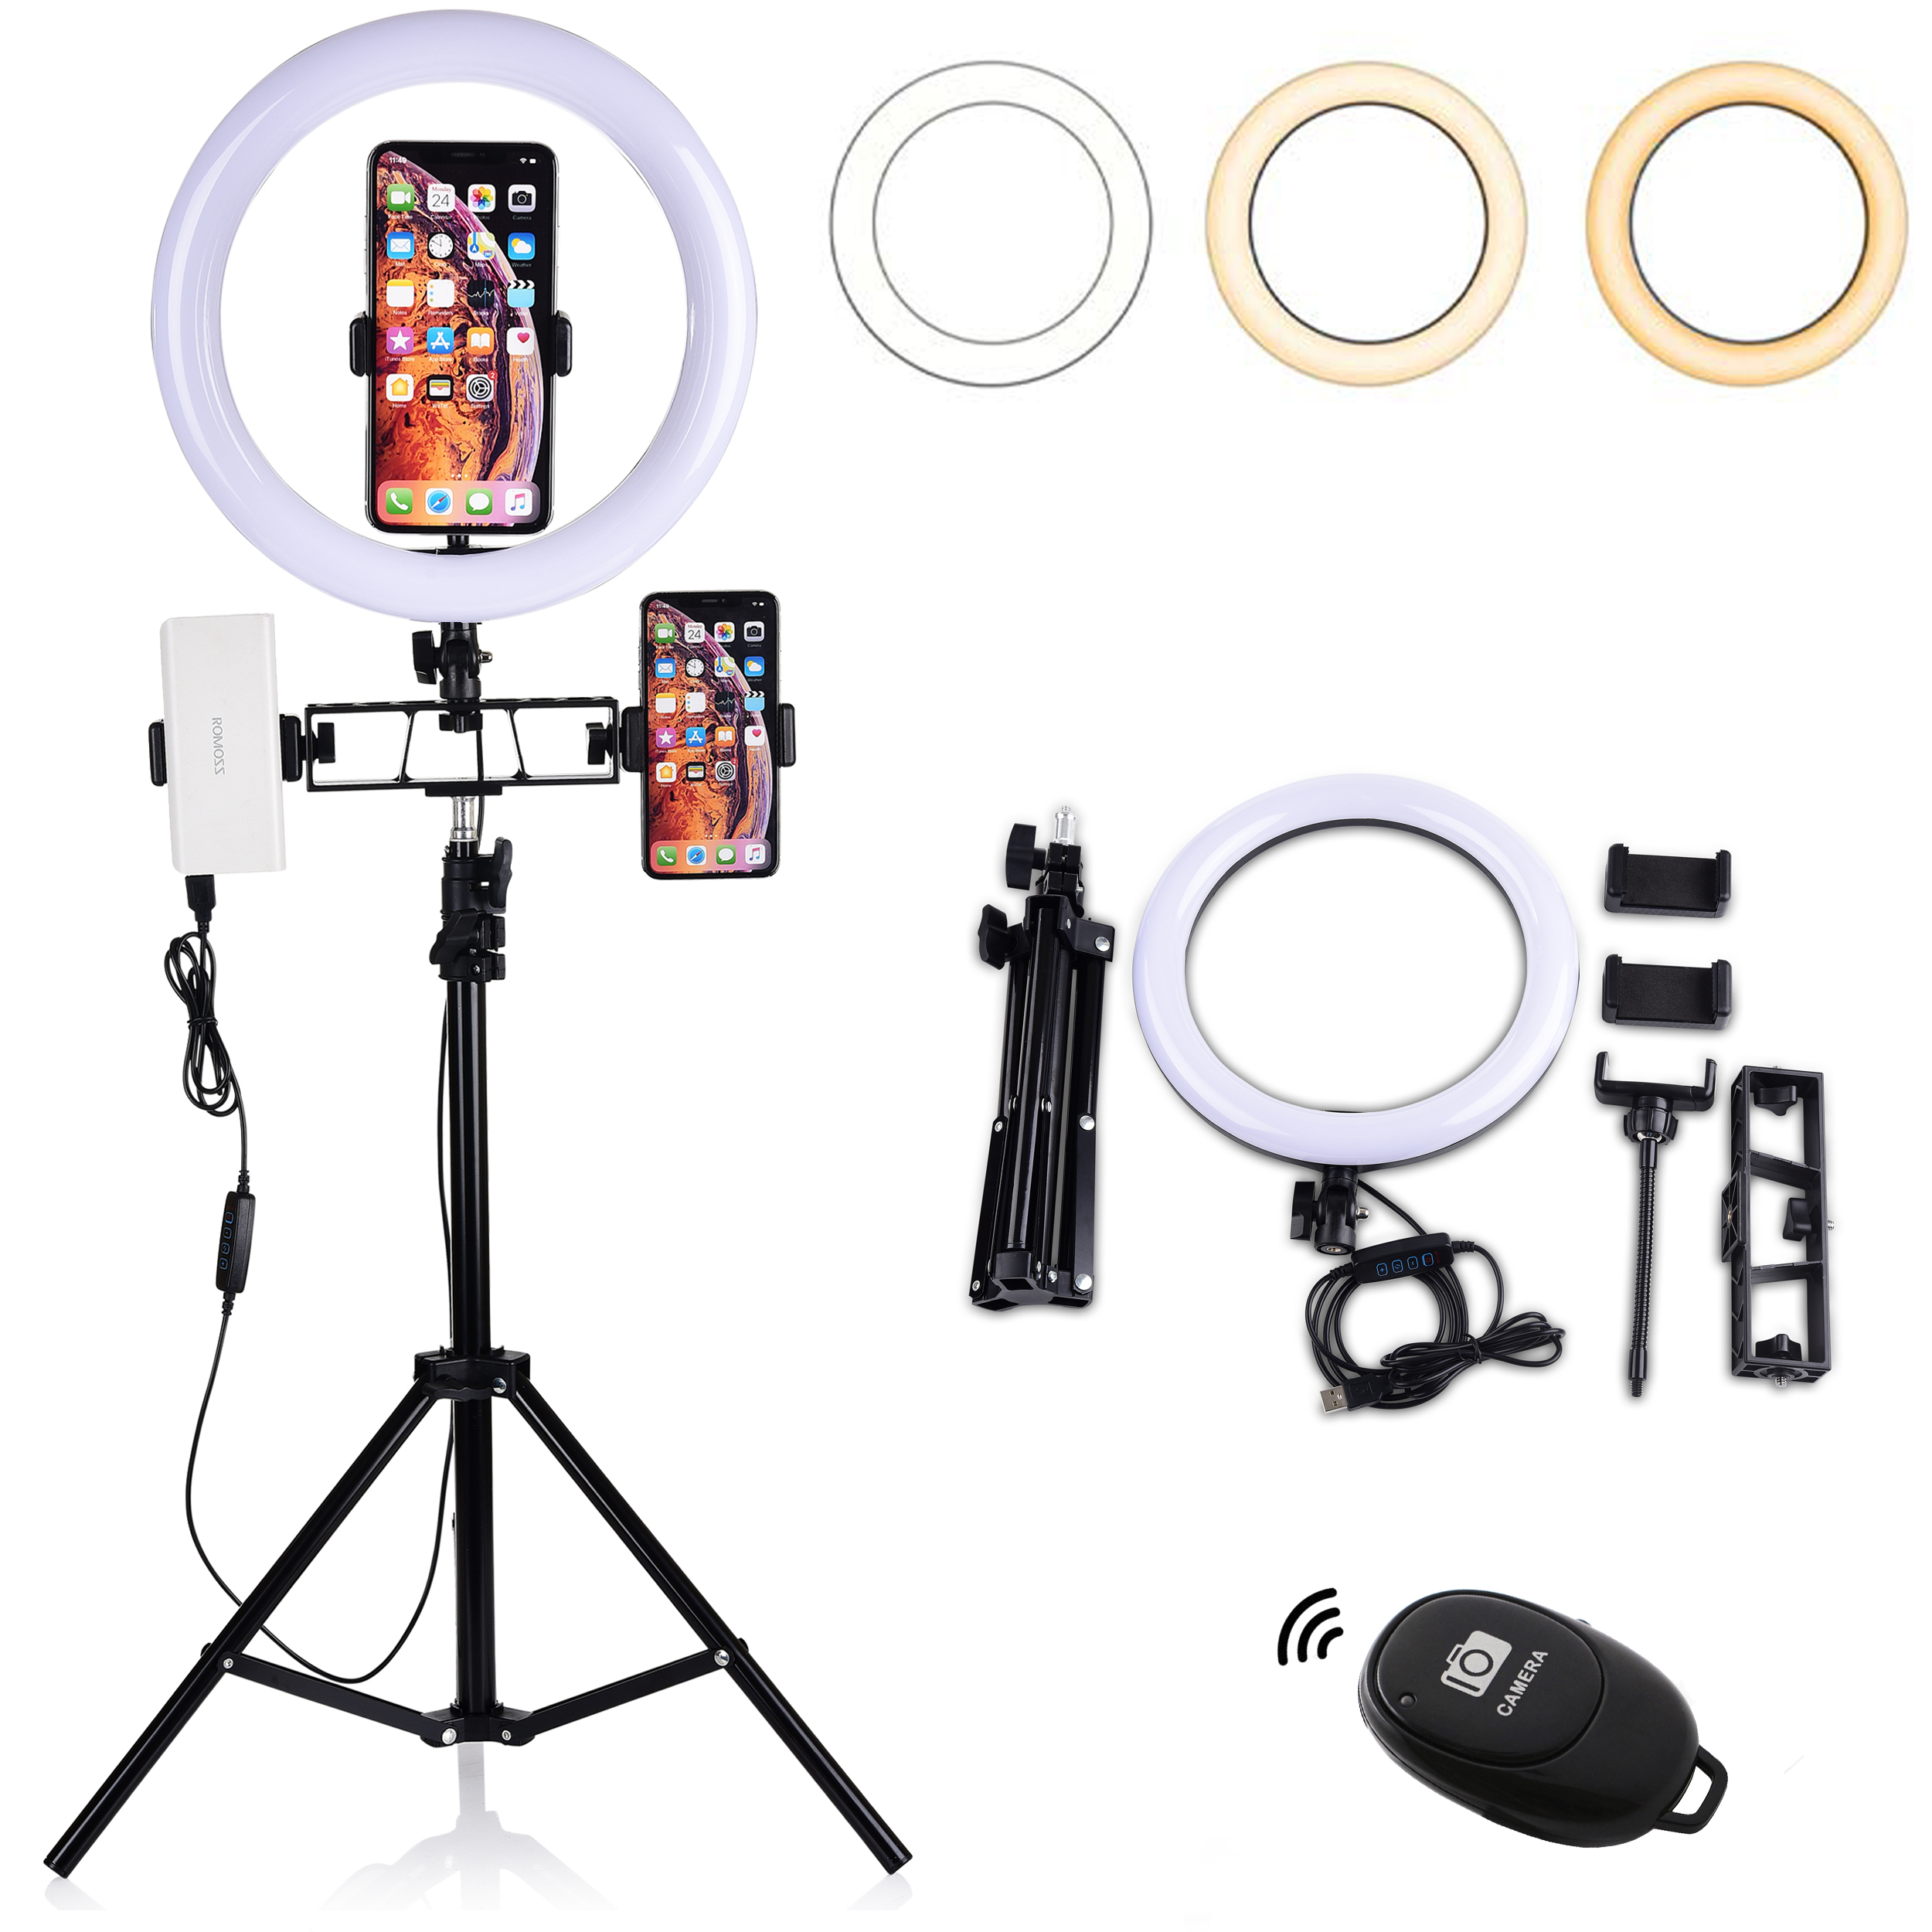 3 Lighting Modes and 10 Lighting Levels of Dimmable RingLight,Selfie Light,for YouTube Video//Makeup//Night Shot 10.2 Selfie Ring Light with Tripod Stand and Phone Holder,Remote Control Ring Light